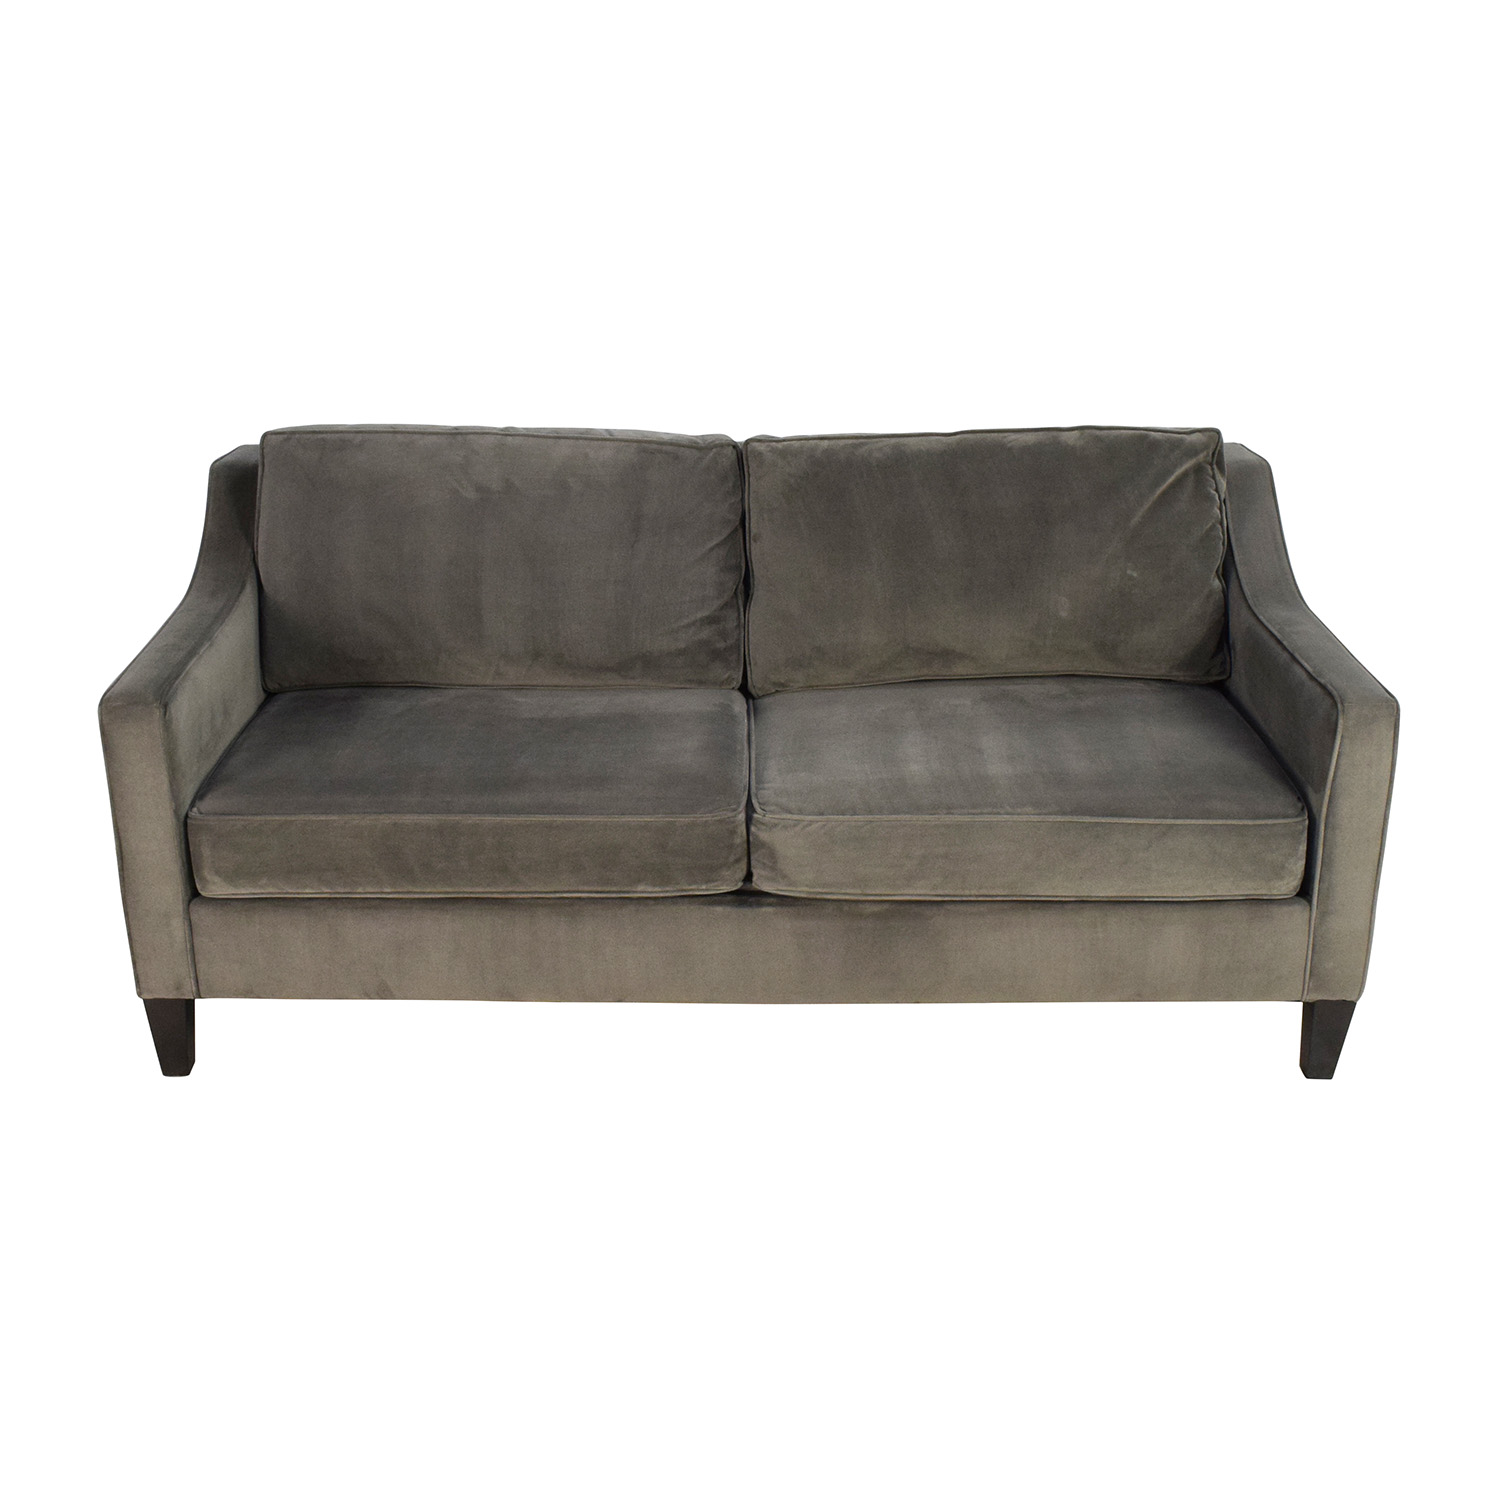 westelm sofa bed how to clean blood stain from leather velvet coupon code